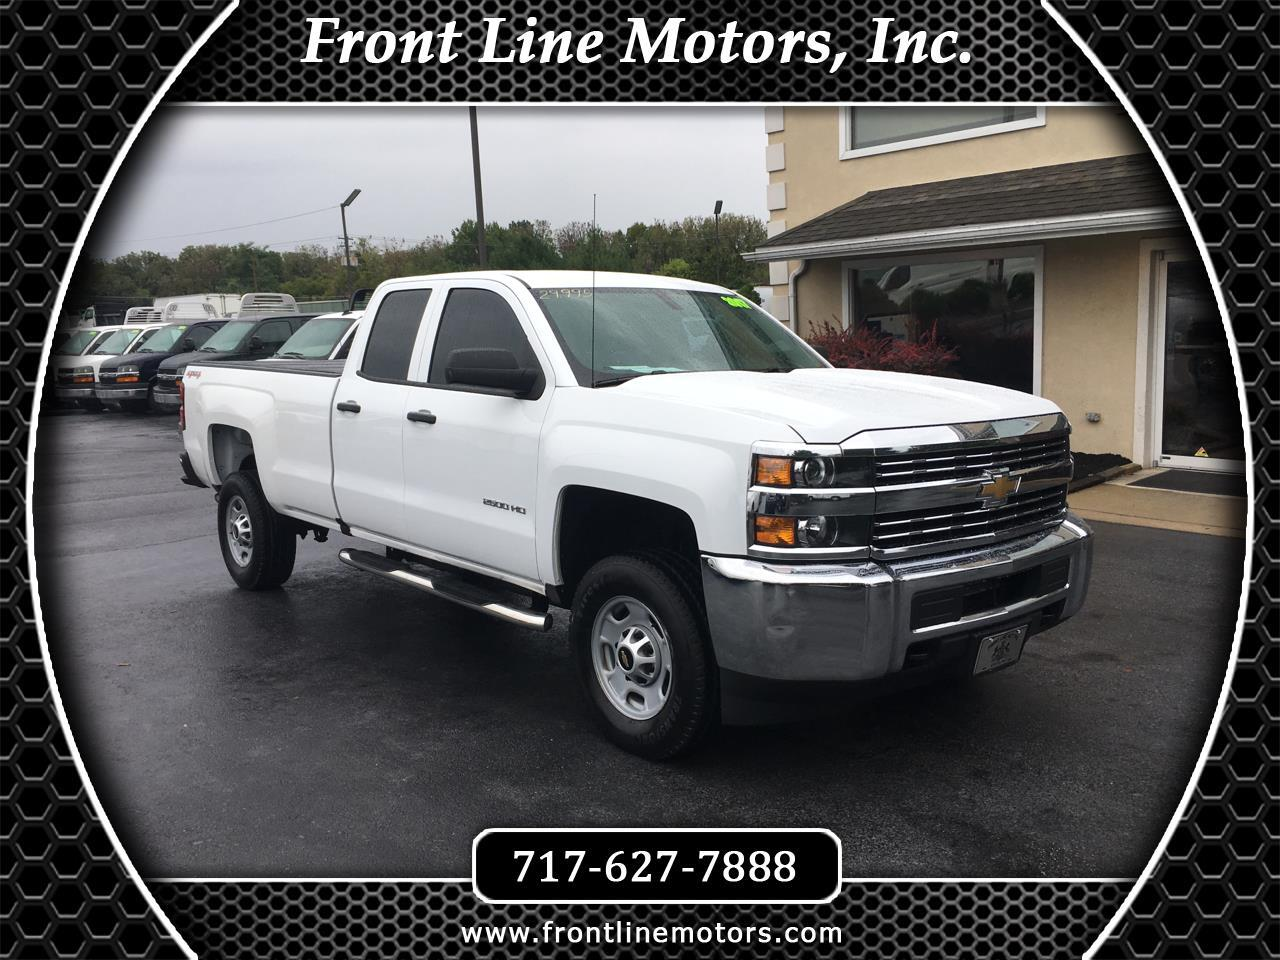 "2017 Chevrolet Silverado 2500HD 4WD Double Cab 158.1"" Work Truck"